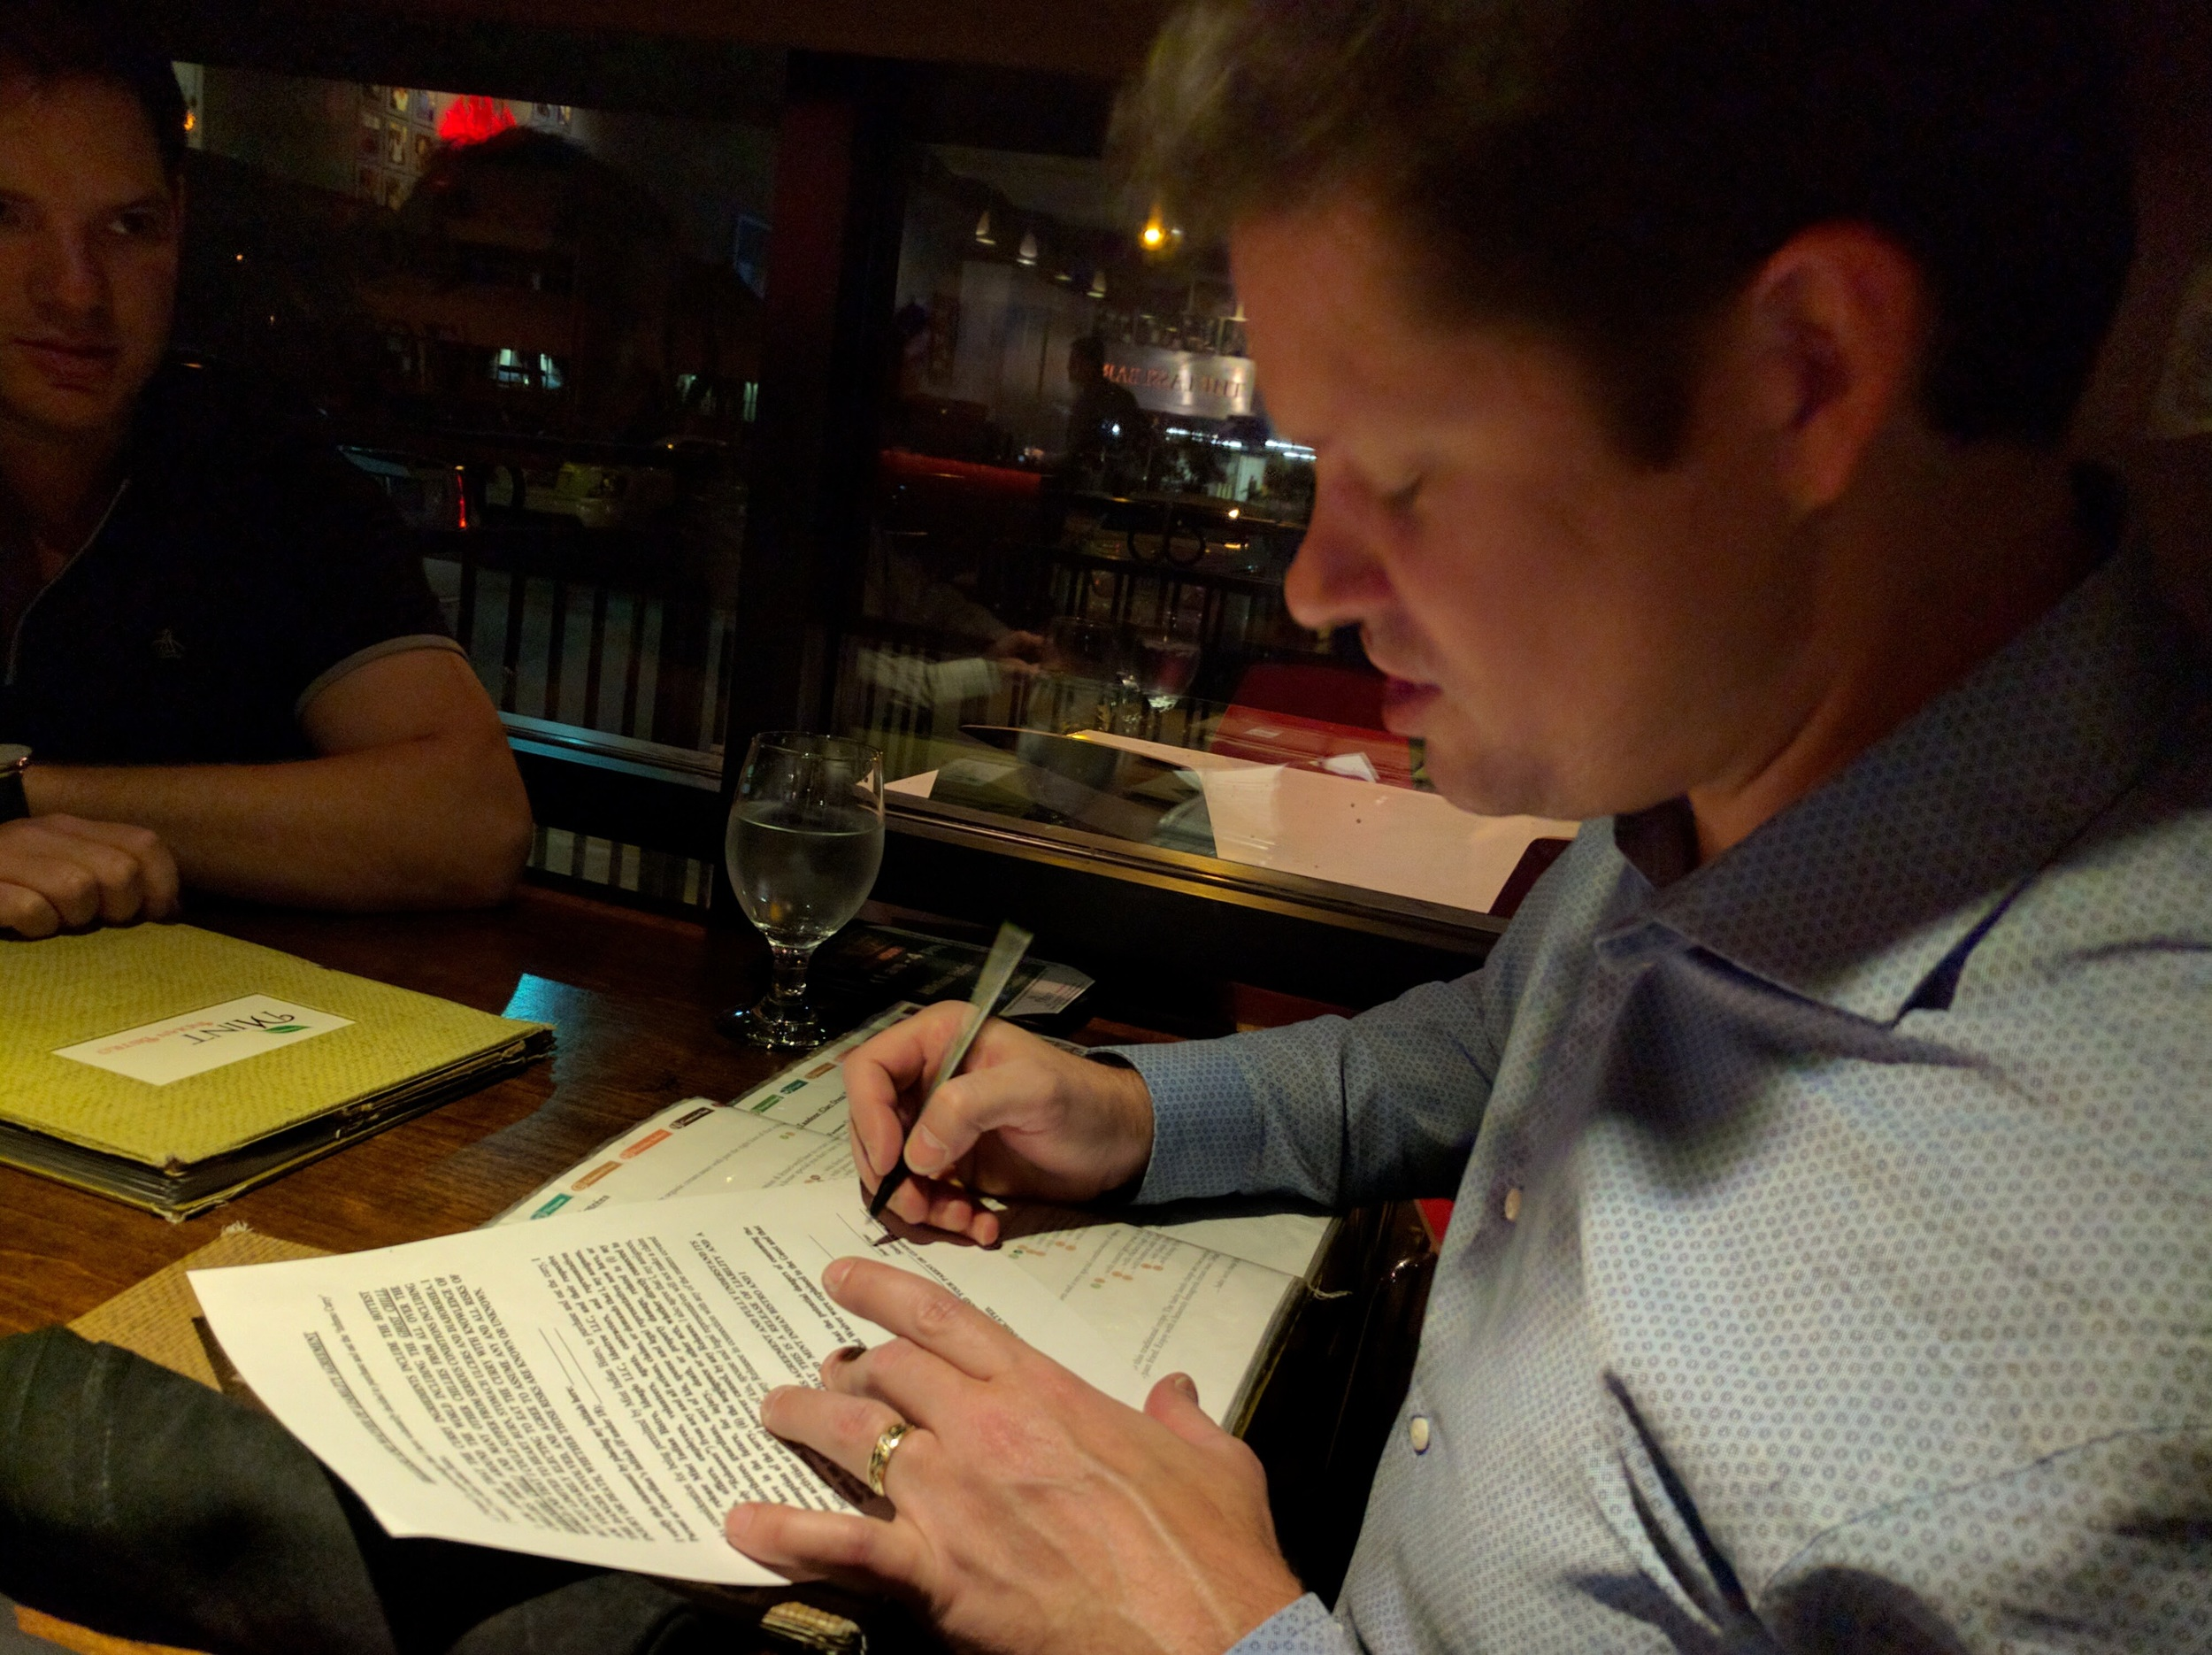 Charles signing his life away for Naan bread...seriously!